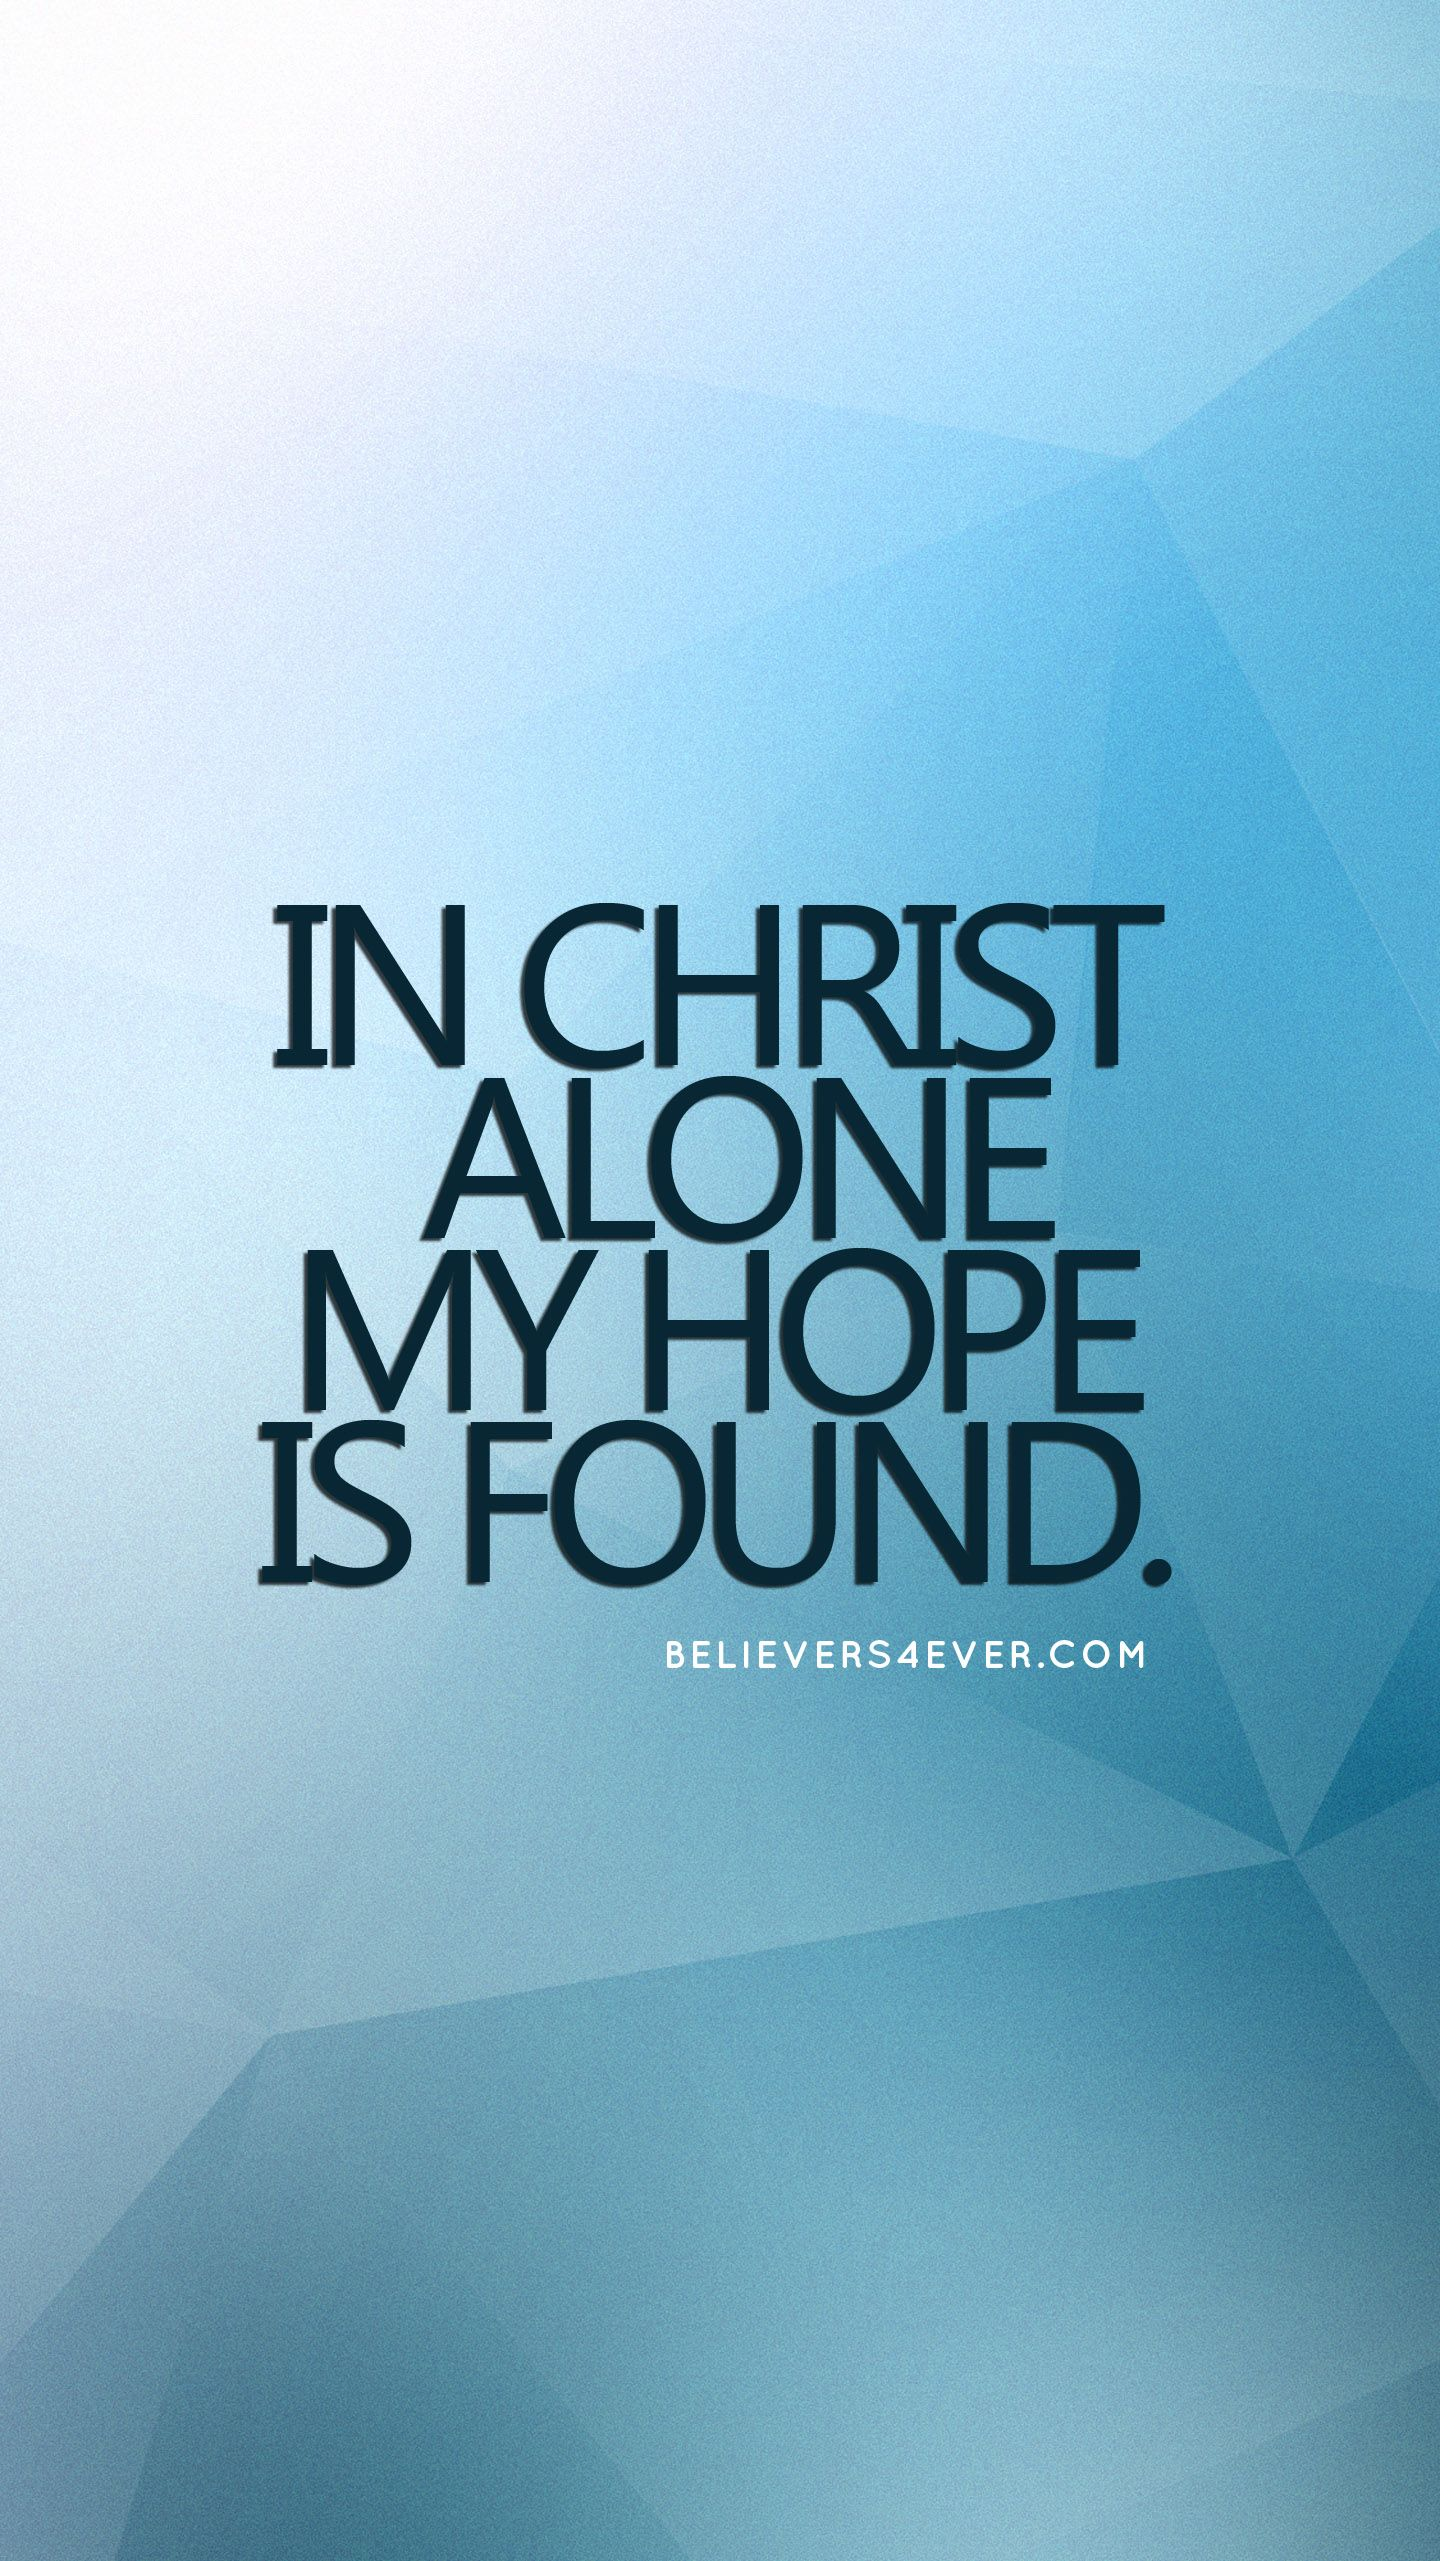 In christ alone mobile wallpaper wallpaper backgrounds and samsung in christ alone my hope is found free mobile wallpaper background download free mobile wallpaper for your android and iphone samsung note 8 wallpaper voltagebd Gallery